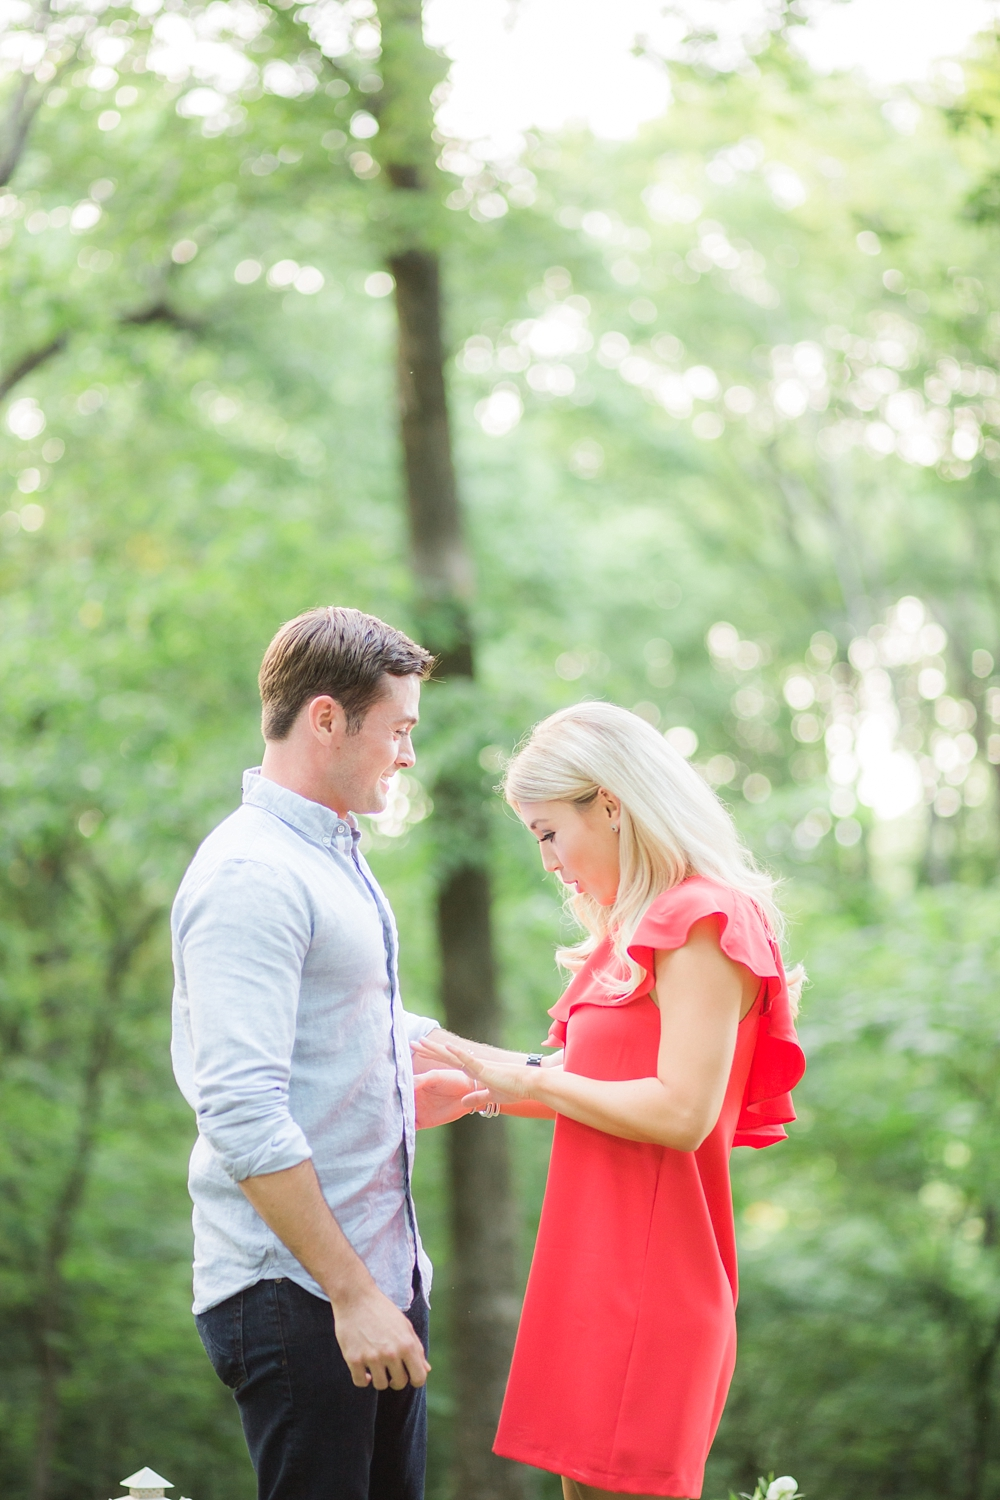 caley-newberry-proposal-photographer.jpg